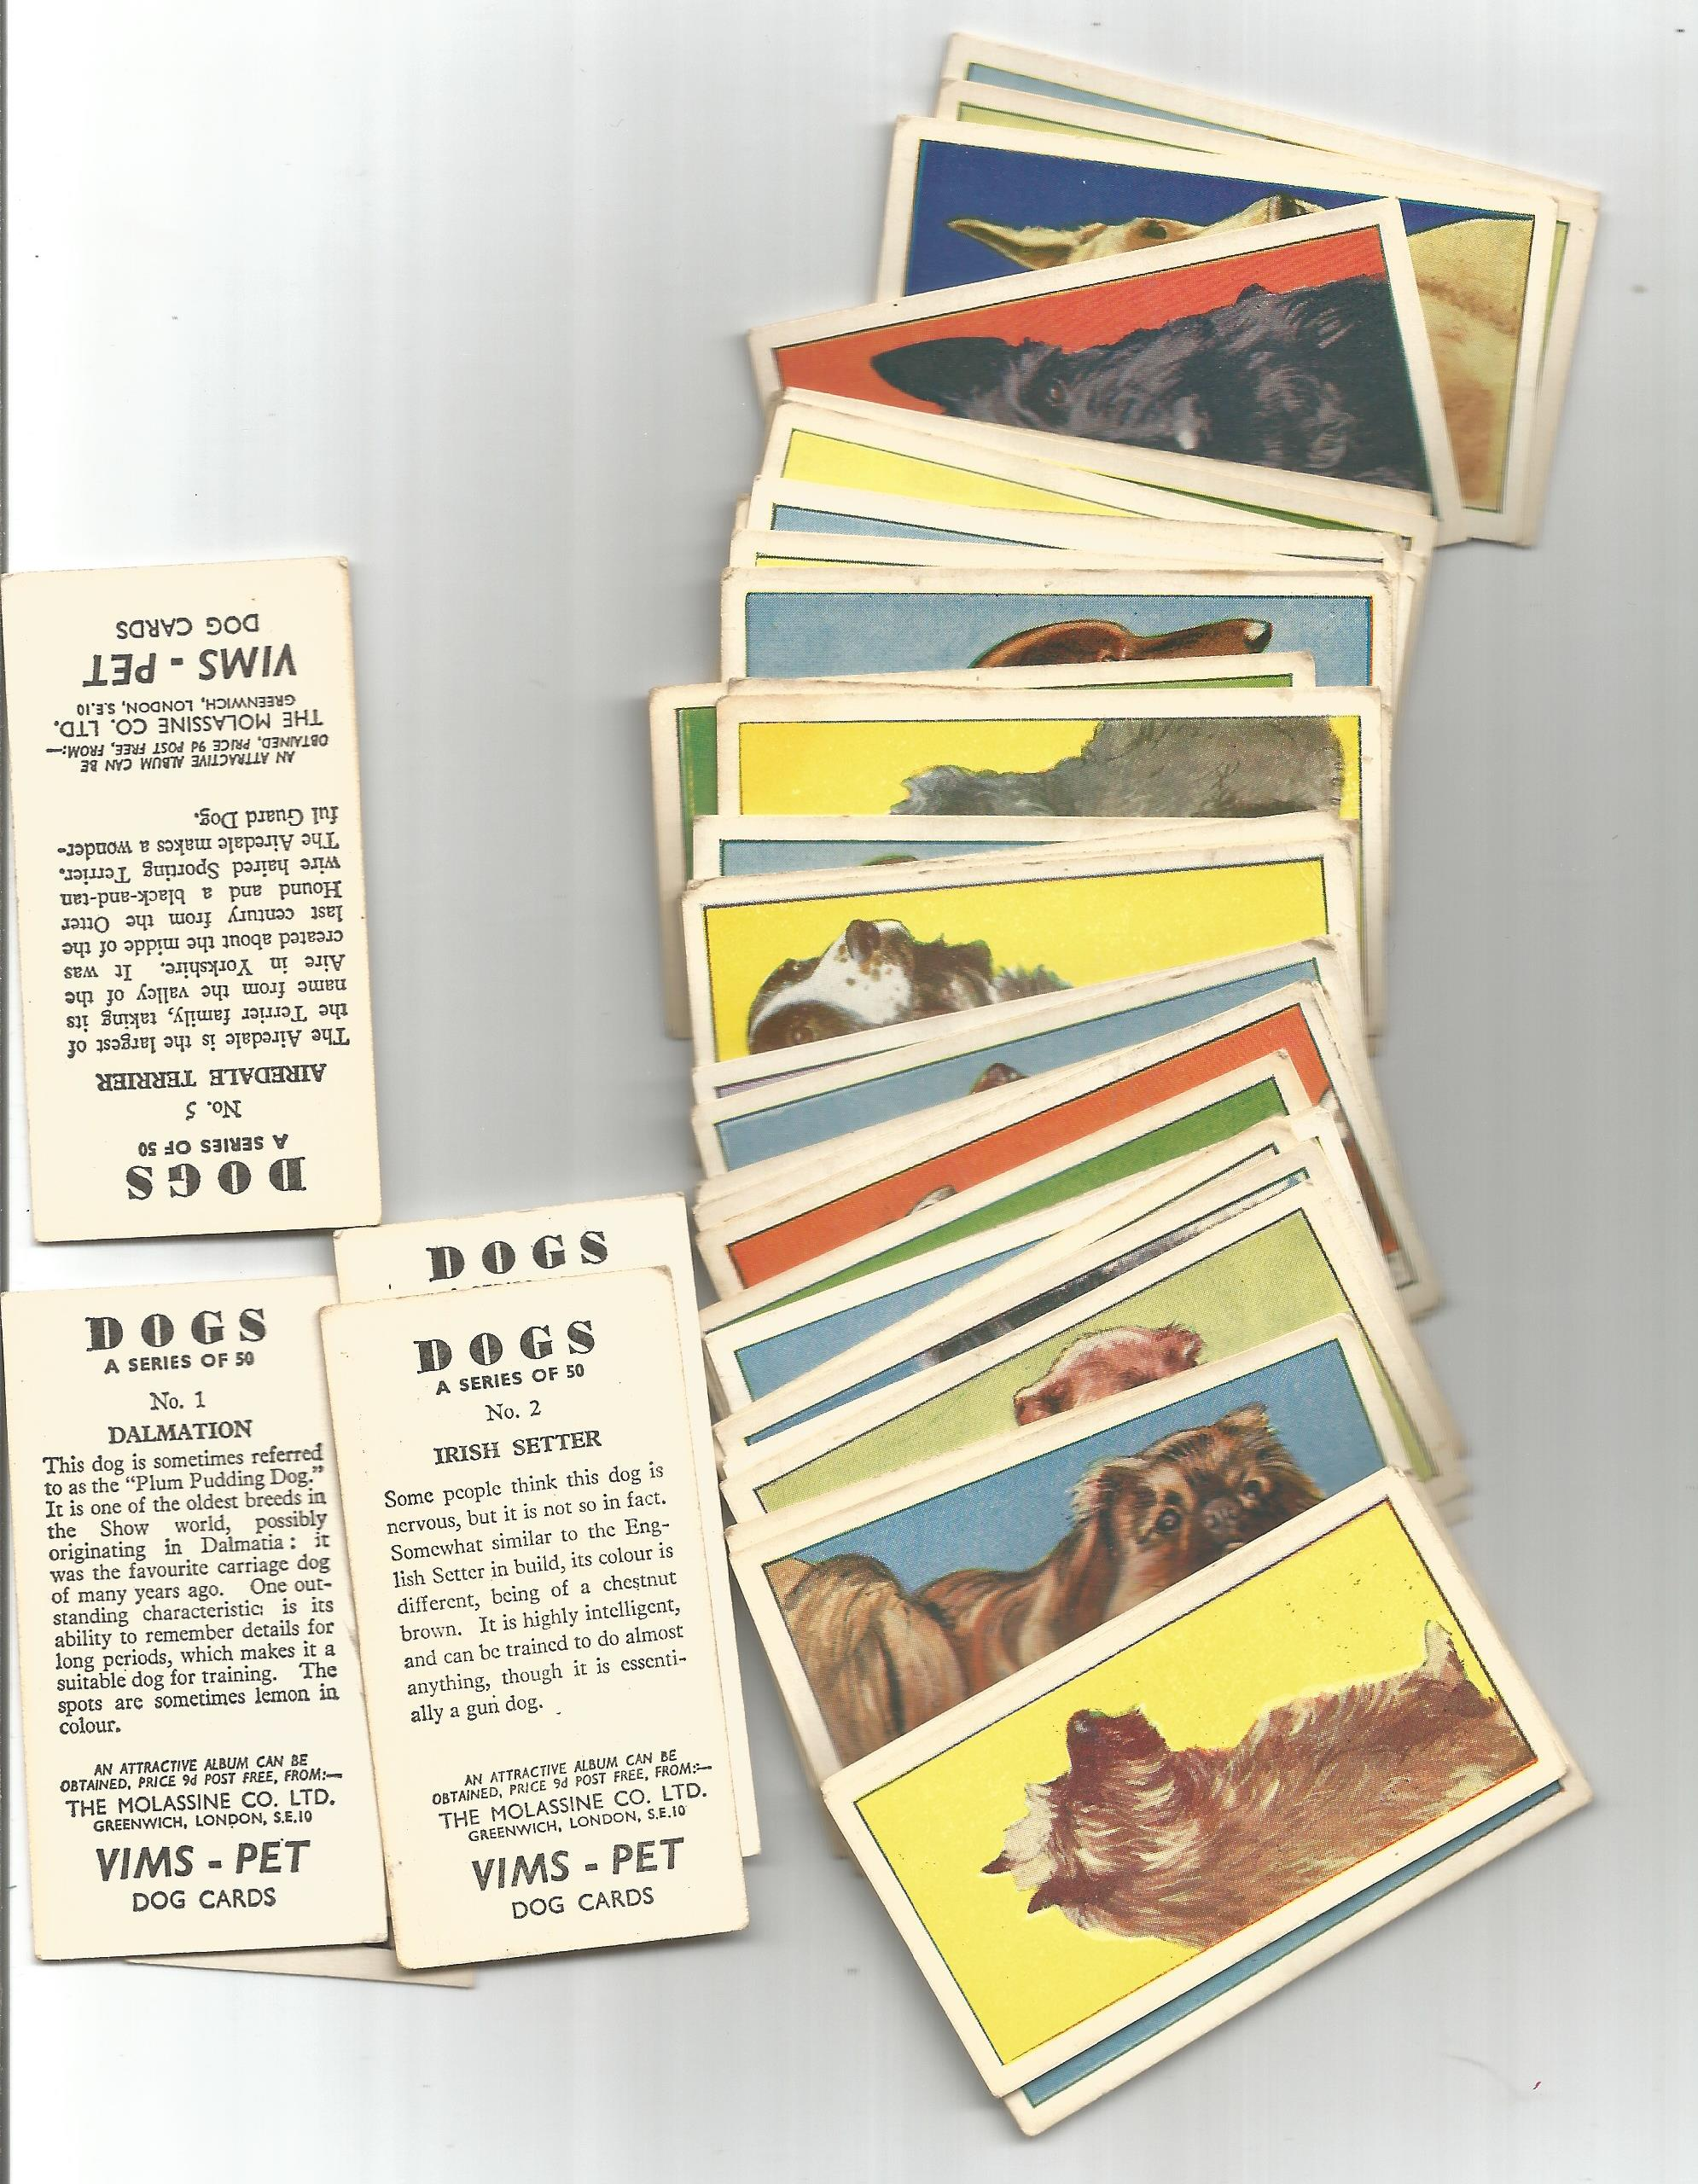 Cigarette card collection. Includes Lyons maid 1966 famous cars 38 cards, The molassme co 1964 - dog - Image 2 of 3